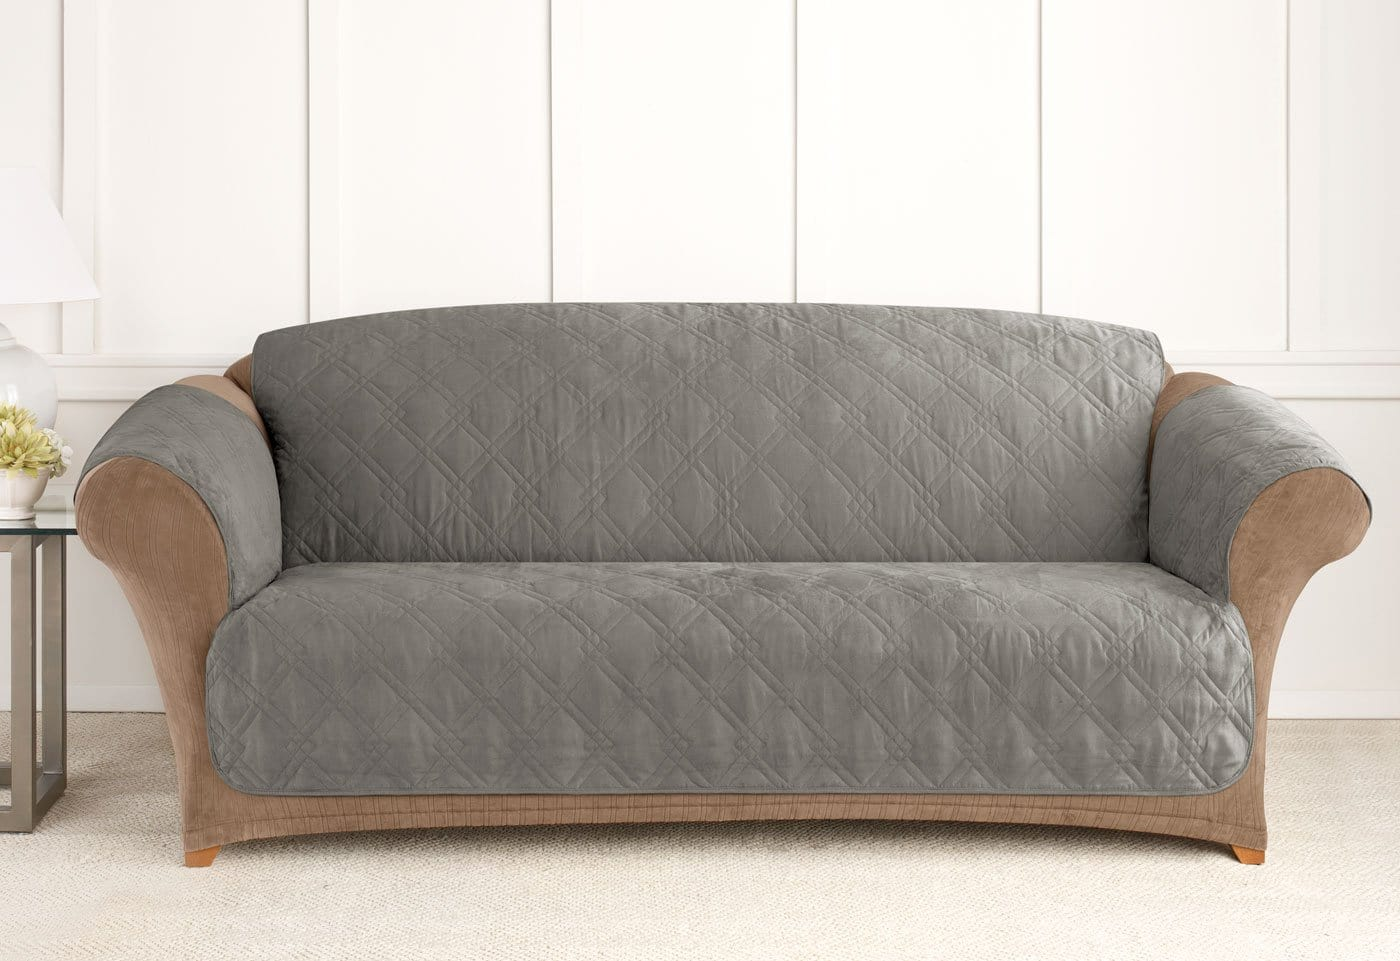 Dupont Cooling Quilted Sofa Furniture Cover